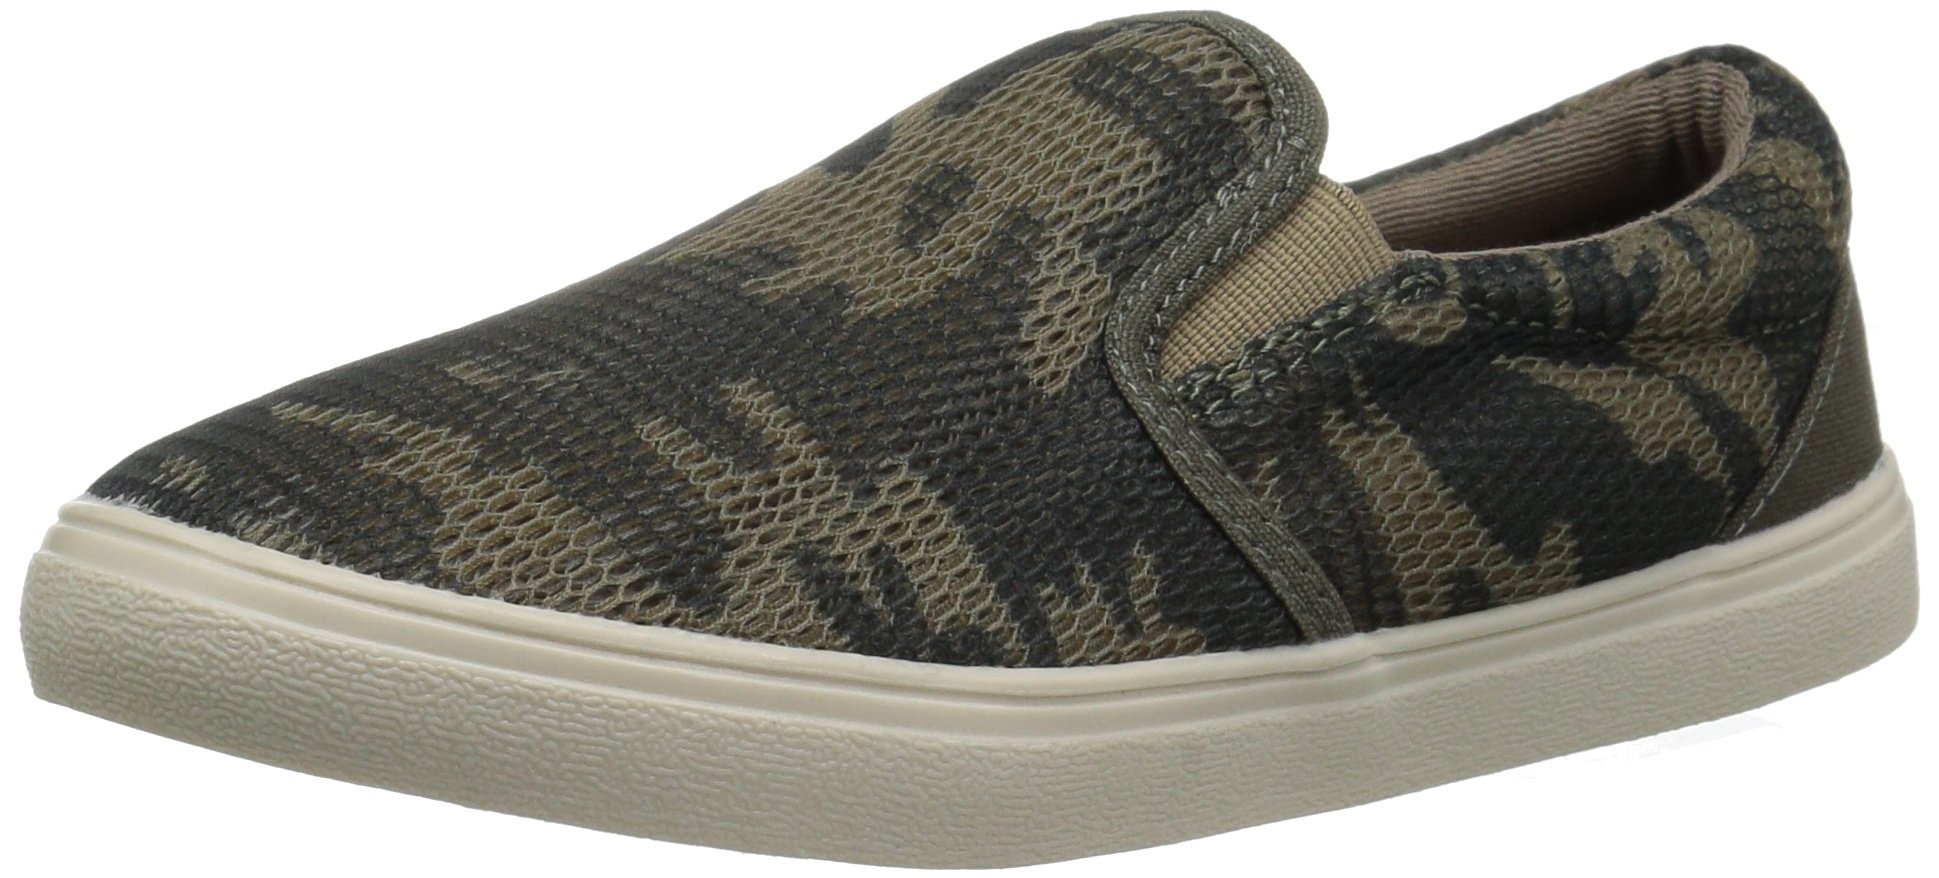 The Children's Place Boys' BB Street Sneaker, Camo, Youth 4 Youth US Big Kid